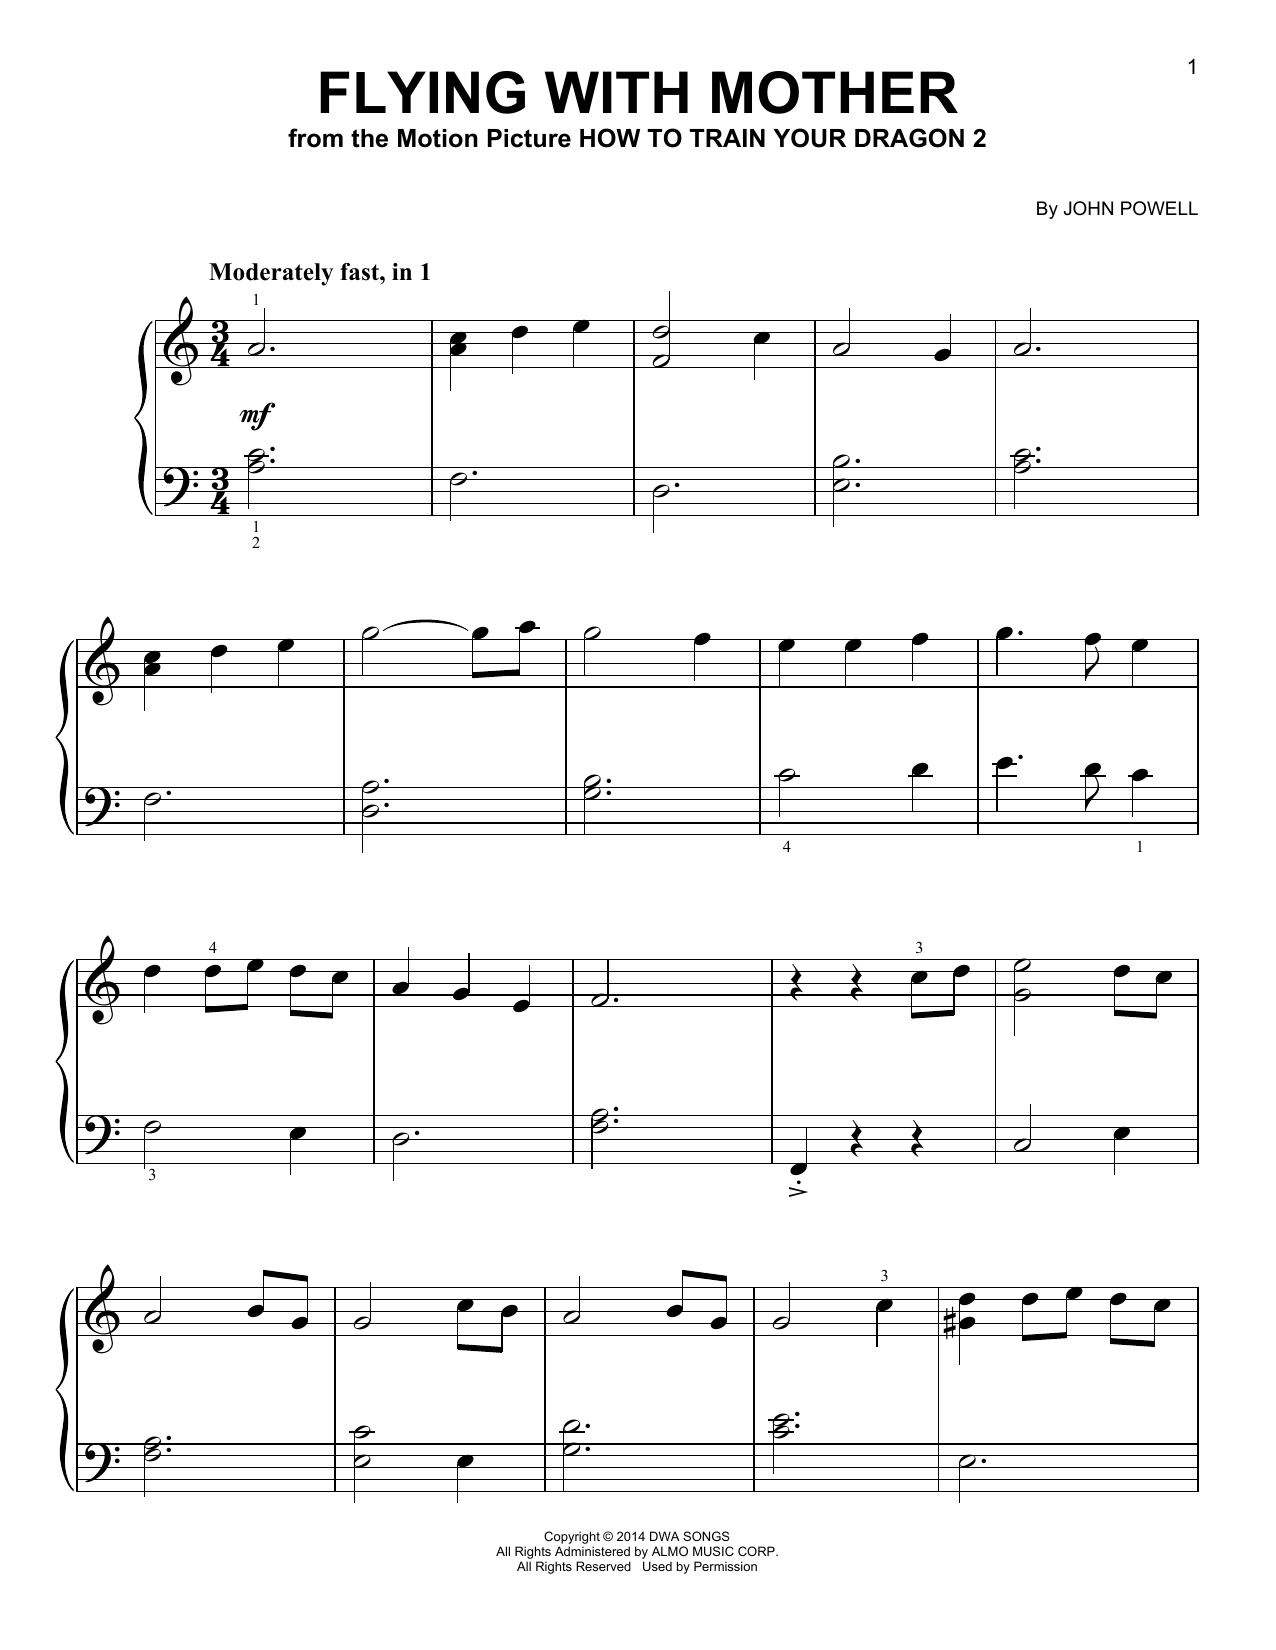 John Powell Flying With Mother From How To Train Your Dragon 2 Sheet Music Download Pdf Score 419789